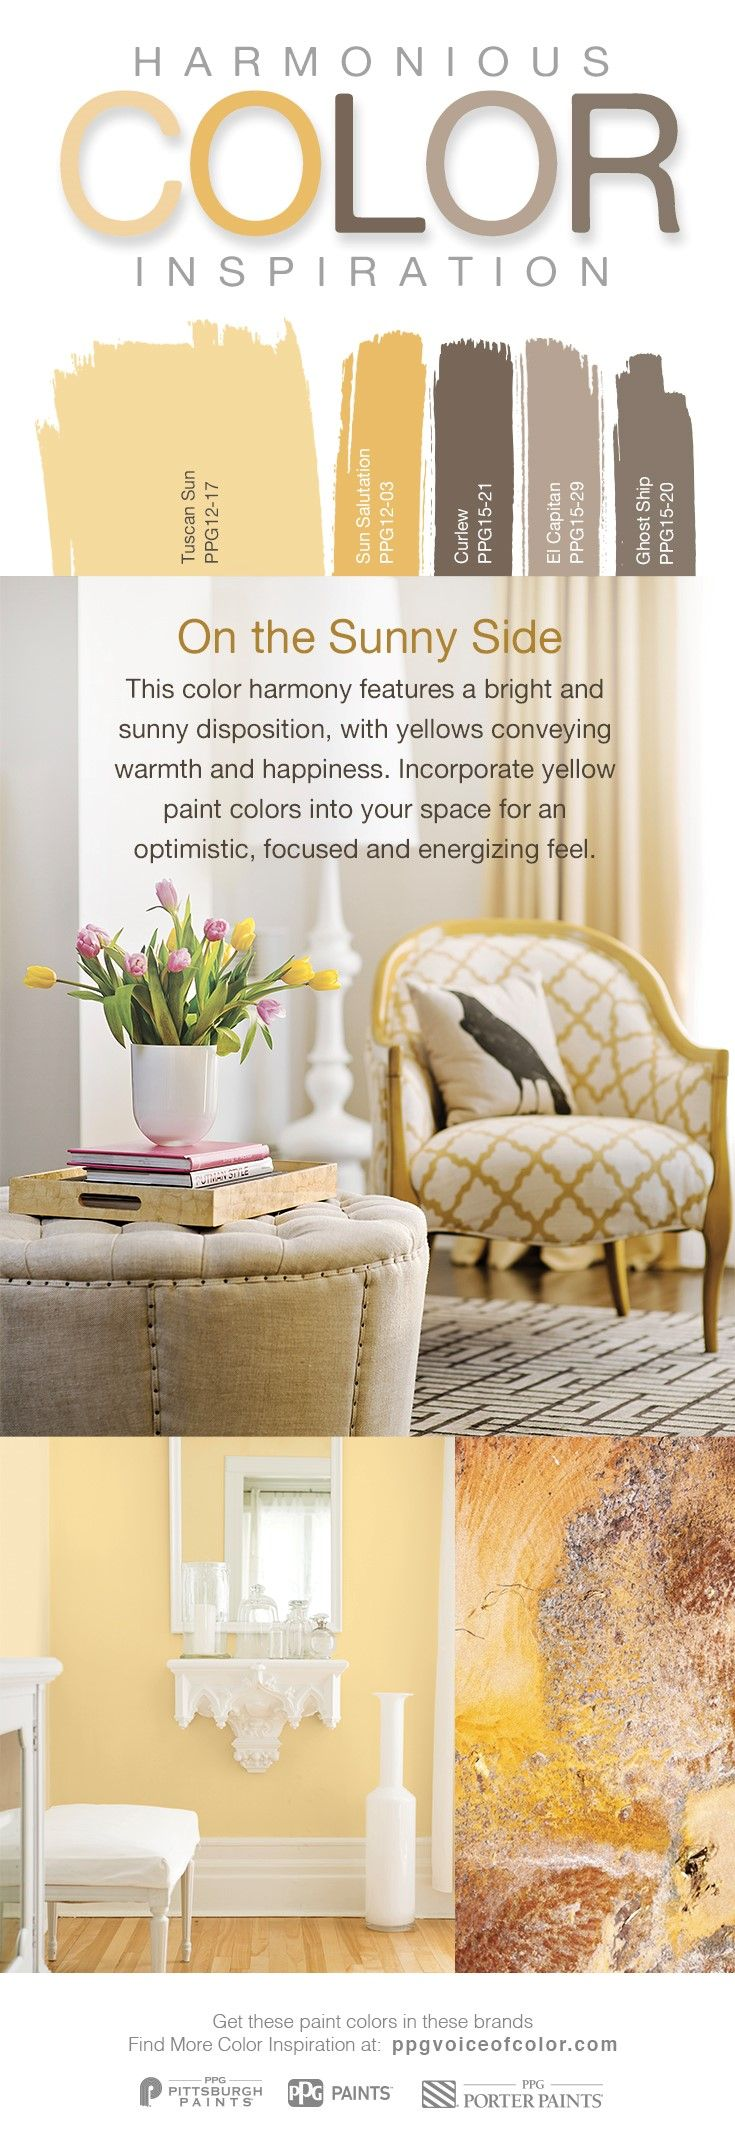 """Find our favorite yellow hues in the """"On the Sunny Side"""" paint color collection. This color harmony features a bright and sunny disposition, with yellows conveying warmth and happiness. Incorporate yellow paint colors into your space for an optimistic, focused and energizing feel."""